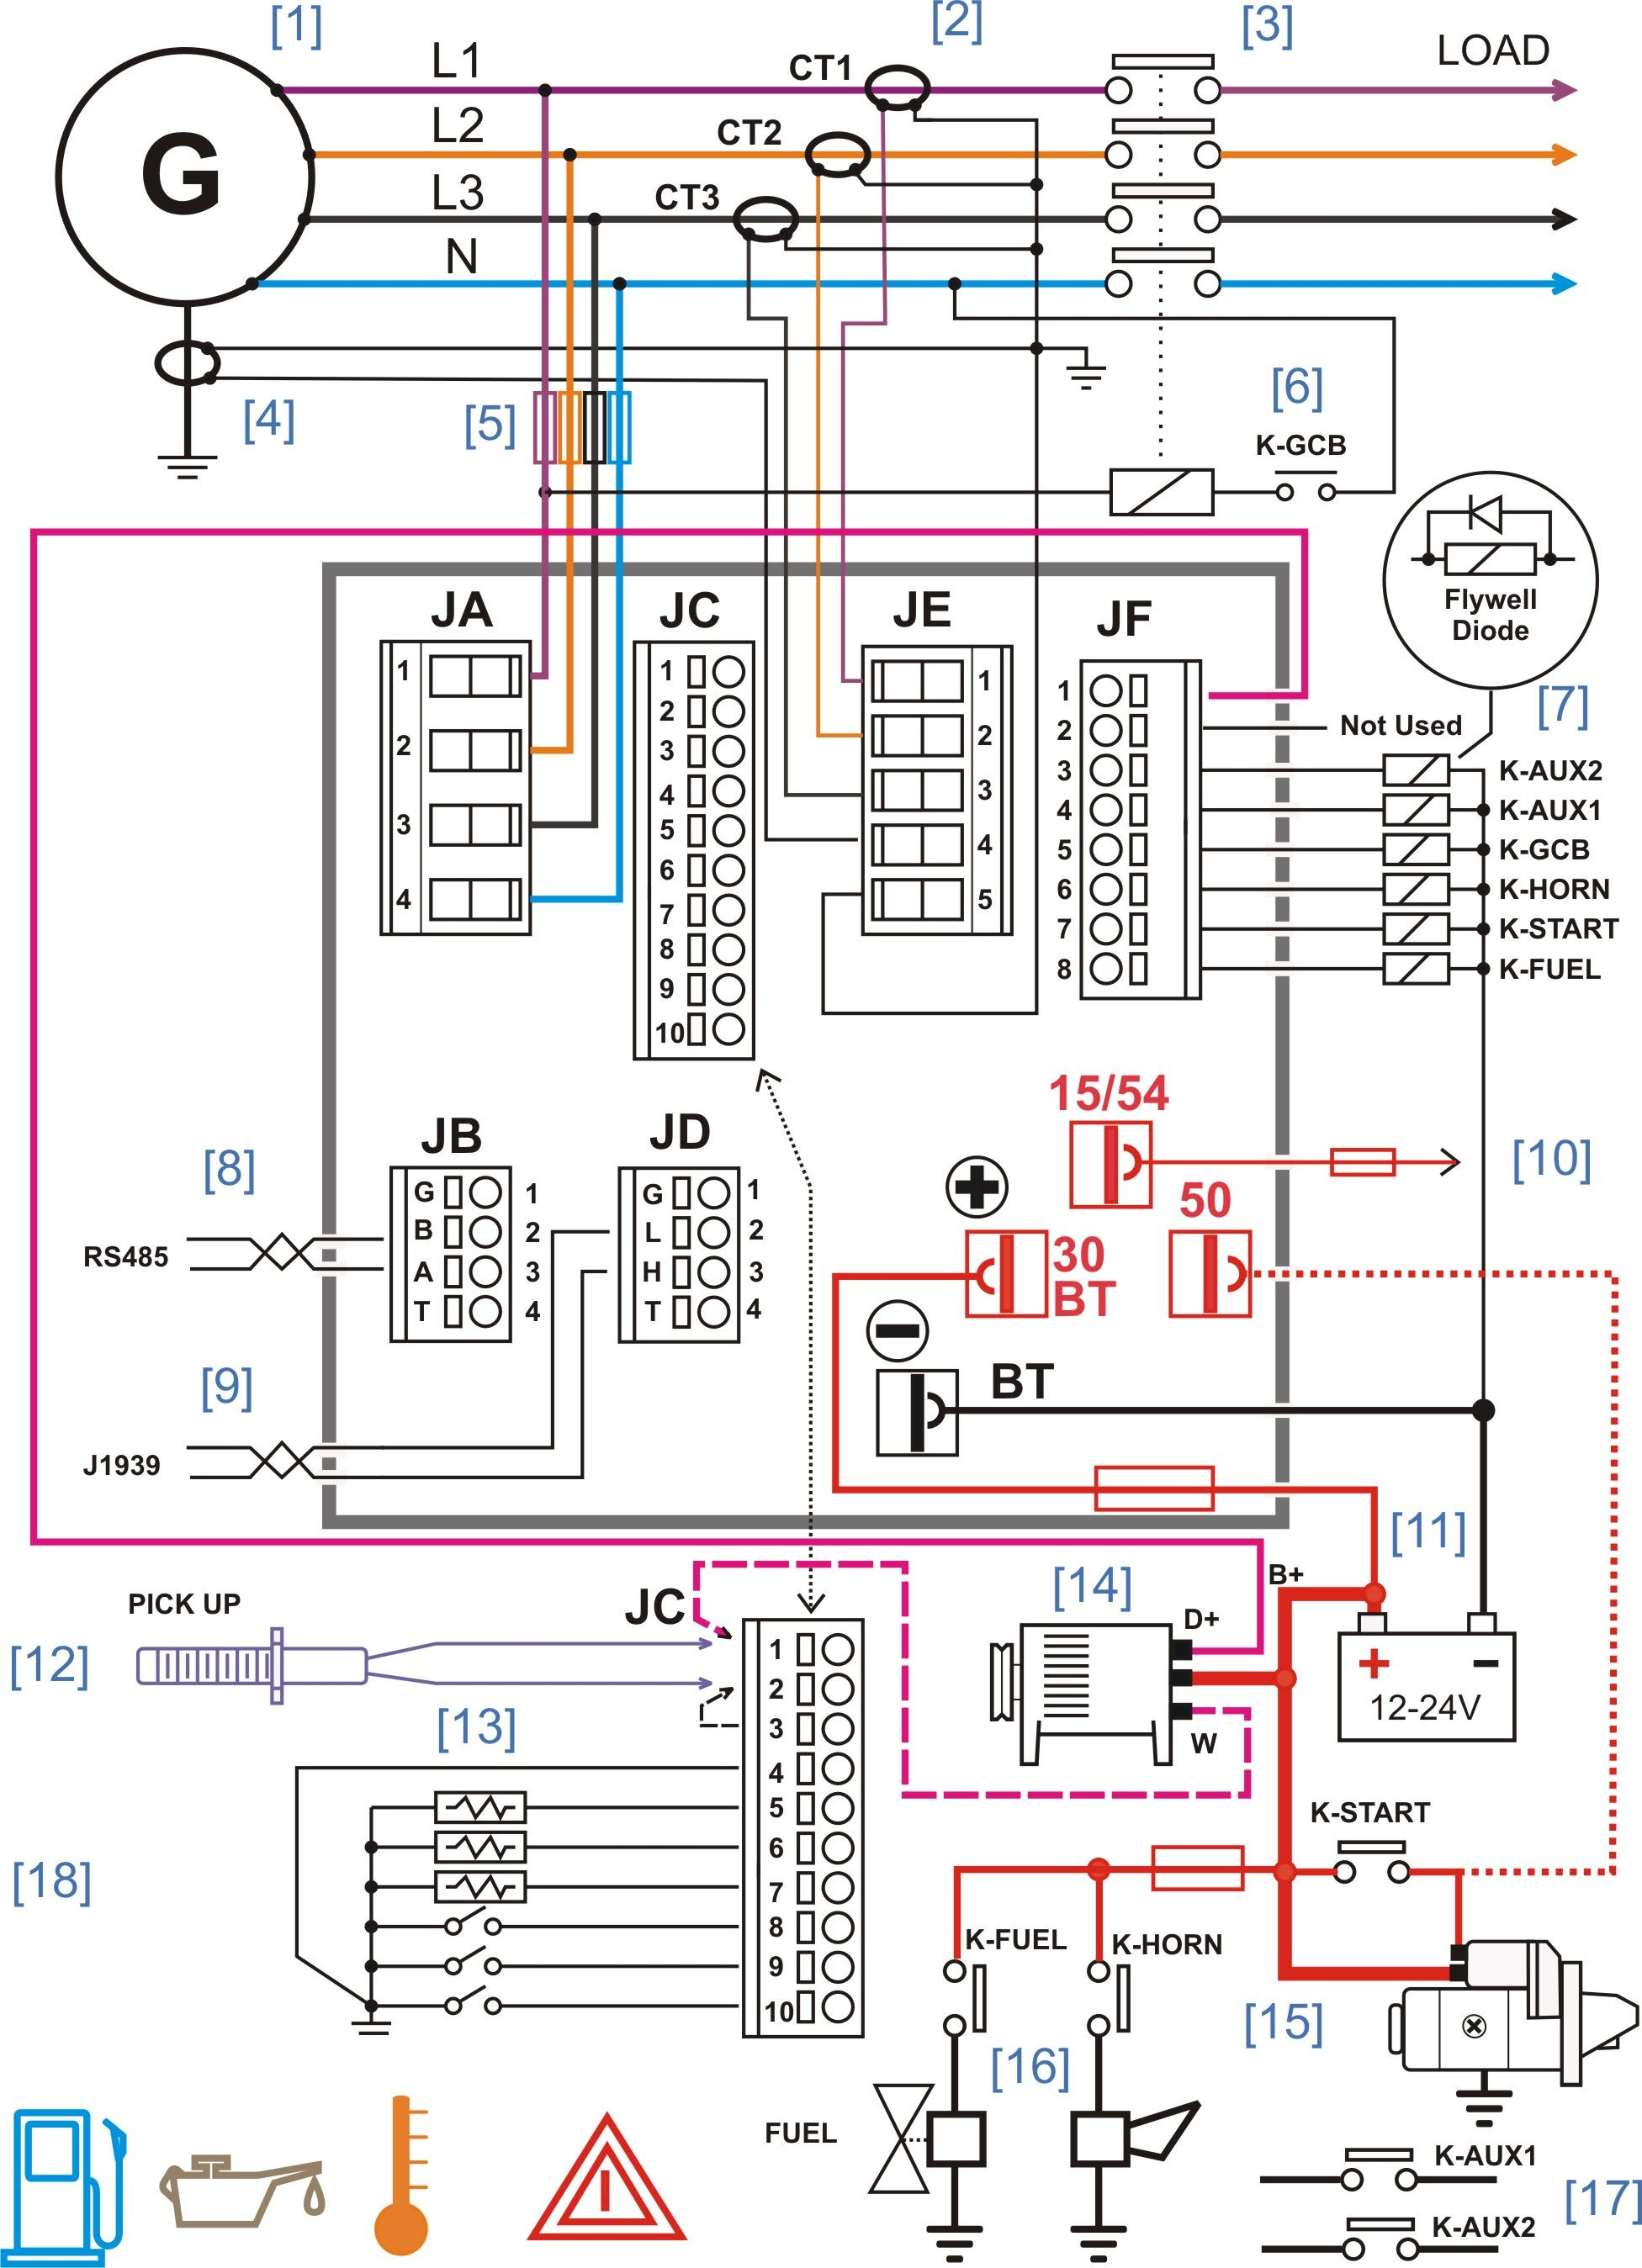 diagram of generator about control schematics wiring diagrams u2022 rh seniorlivinguniversity co 3 Phase Generator Wiring Diagram natural gas generator wiring diagram